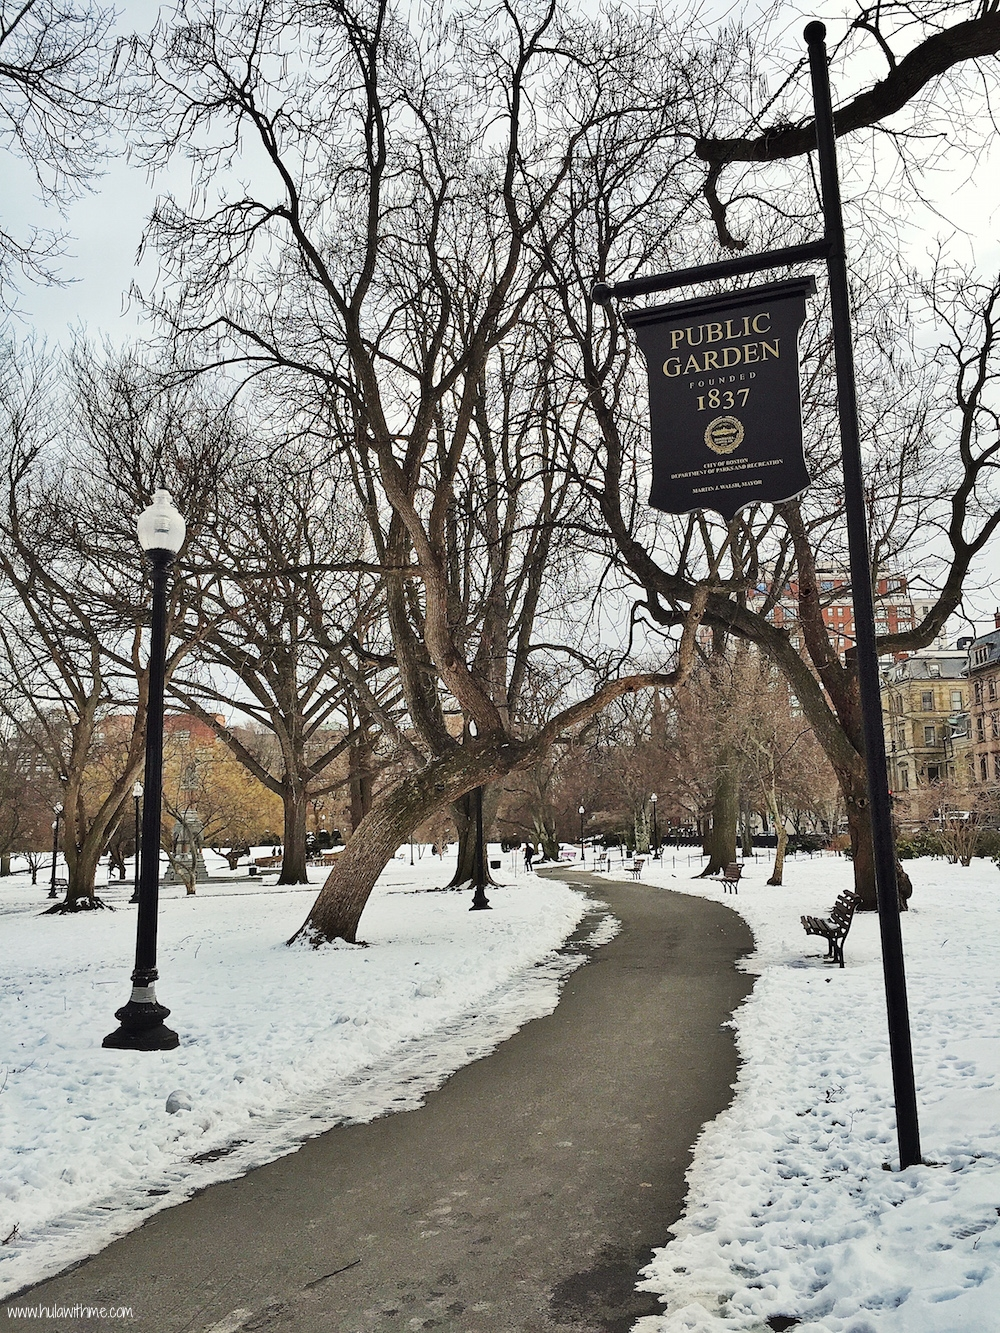 Boston Charm: Snowy scene in Boston Public Garden, Founded in 1837.